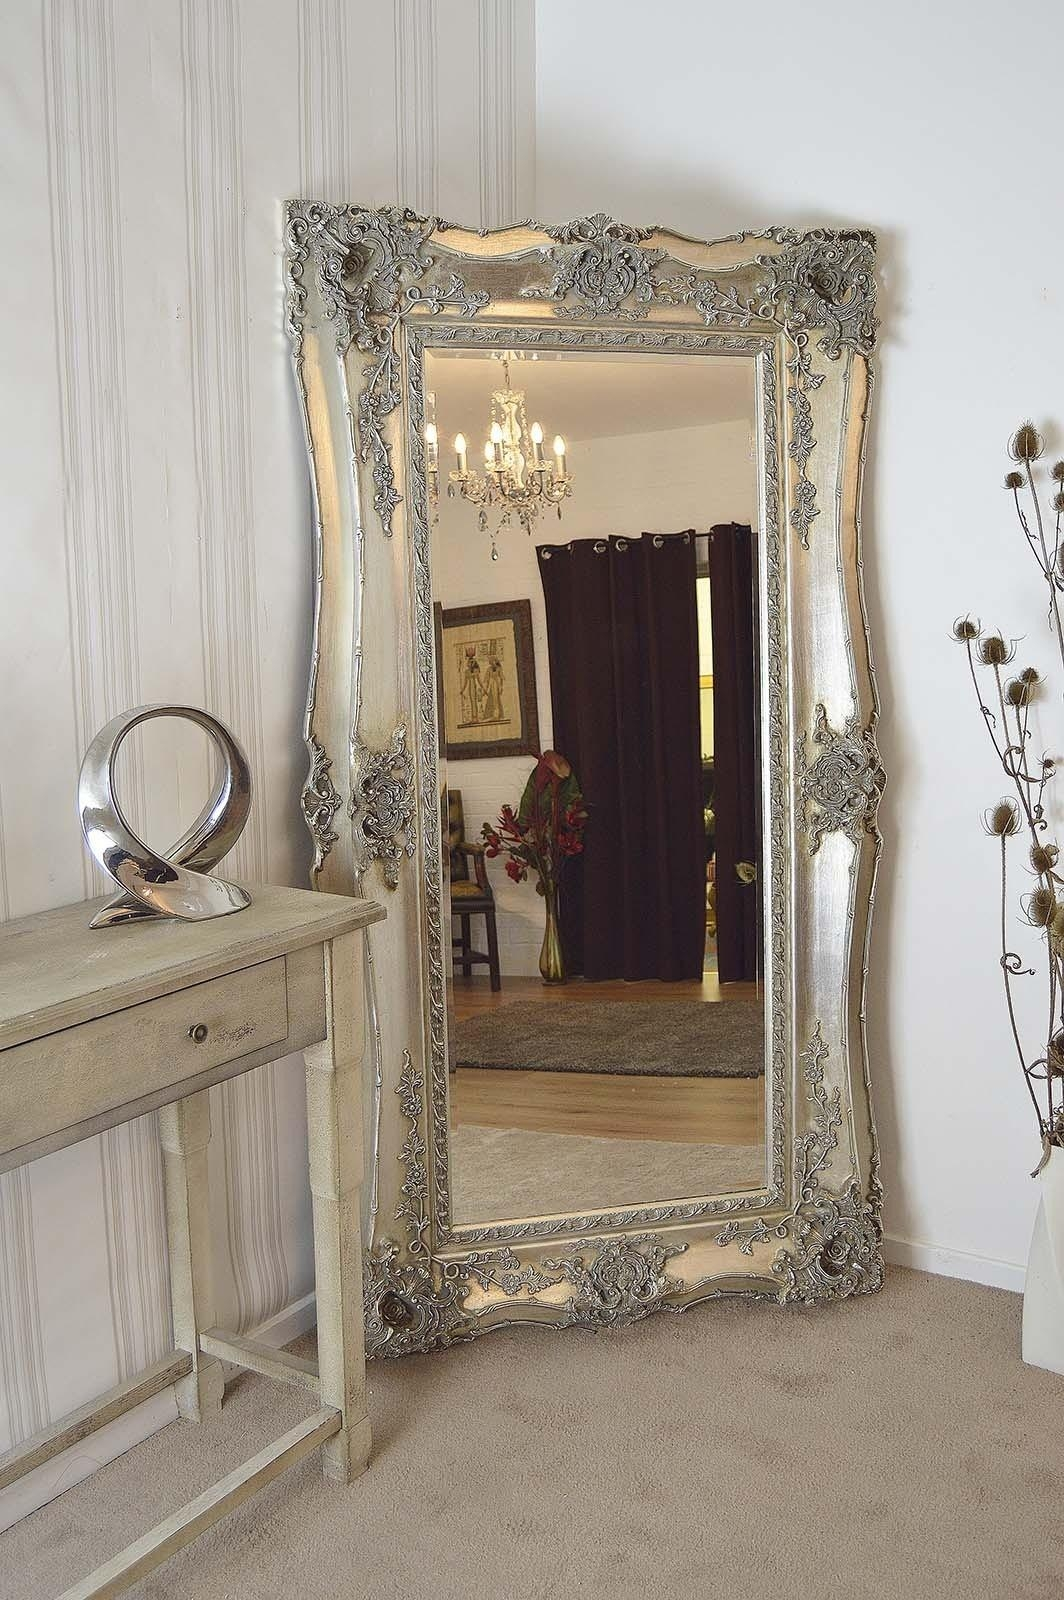 Large Antique Wall Mirror Ornate Frame Antique Ornate Wall Mirrors Regarding Antique Full Length Wall Mirror (View 3 of 20)